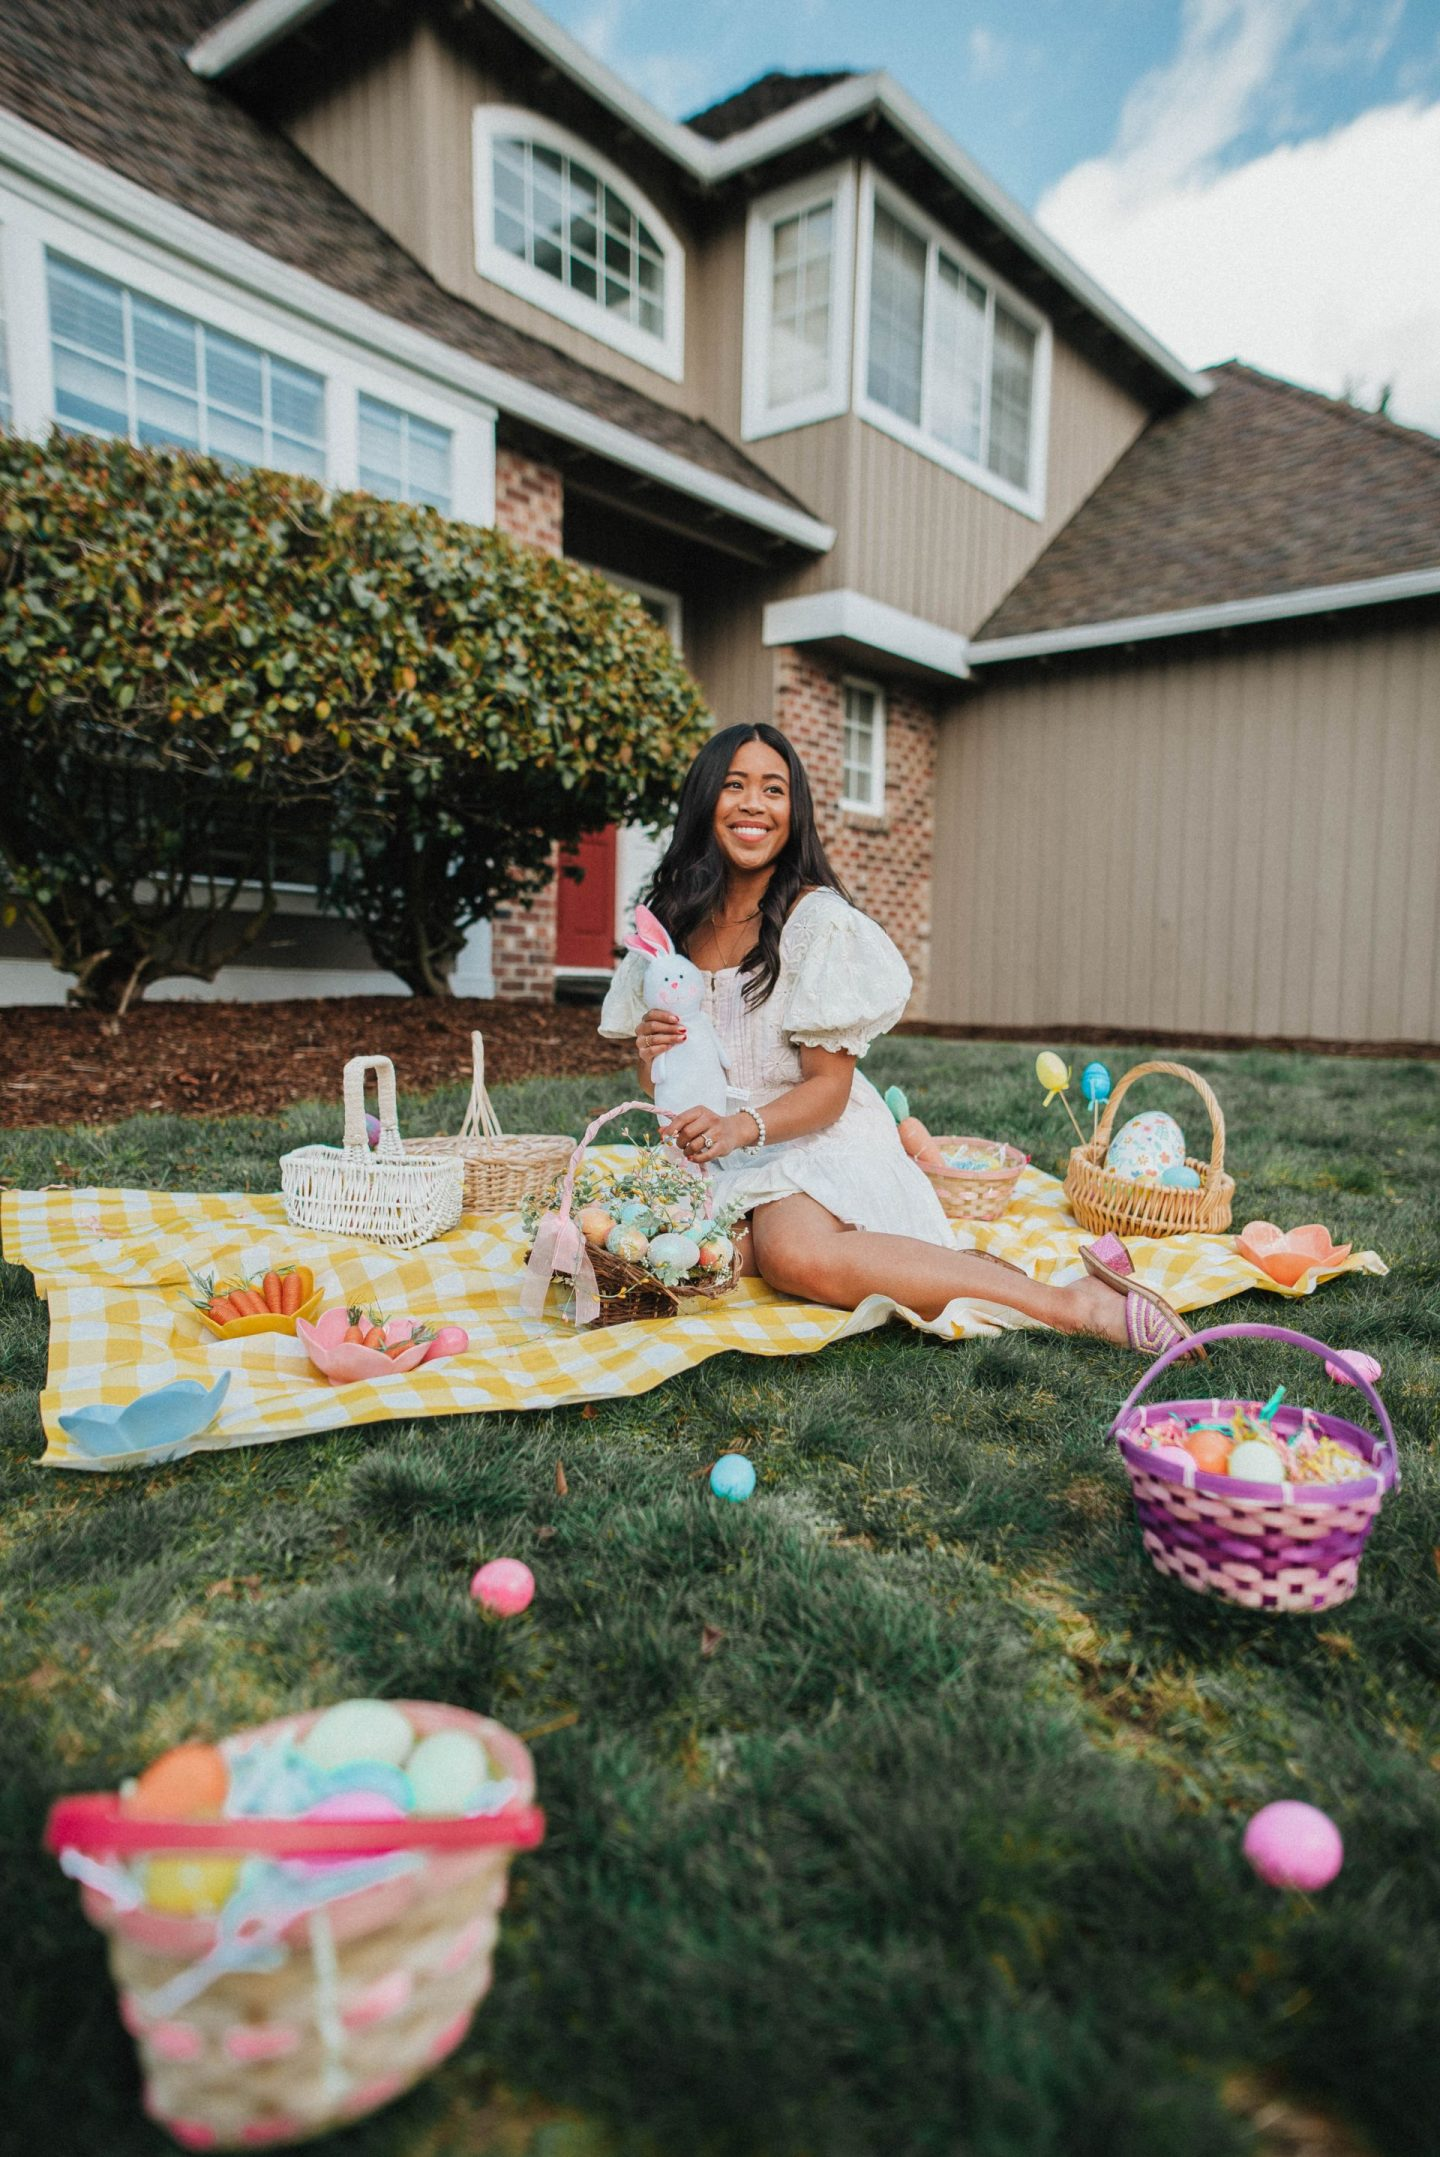 Easter at home - Easter baskets - Easter egg hunt - Easter photo shoot ideas - Easter dresses - Easter outfits - image from www.emmasedition - copyright @emmasedition